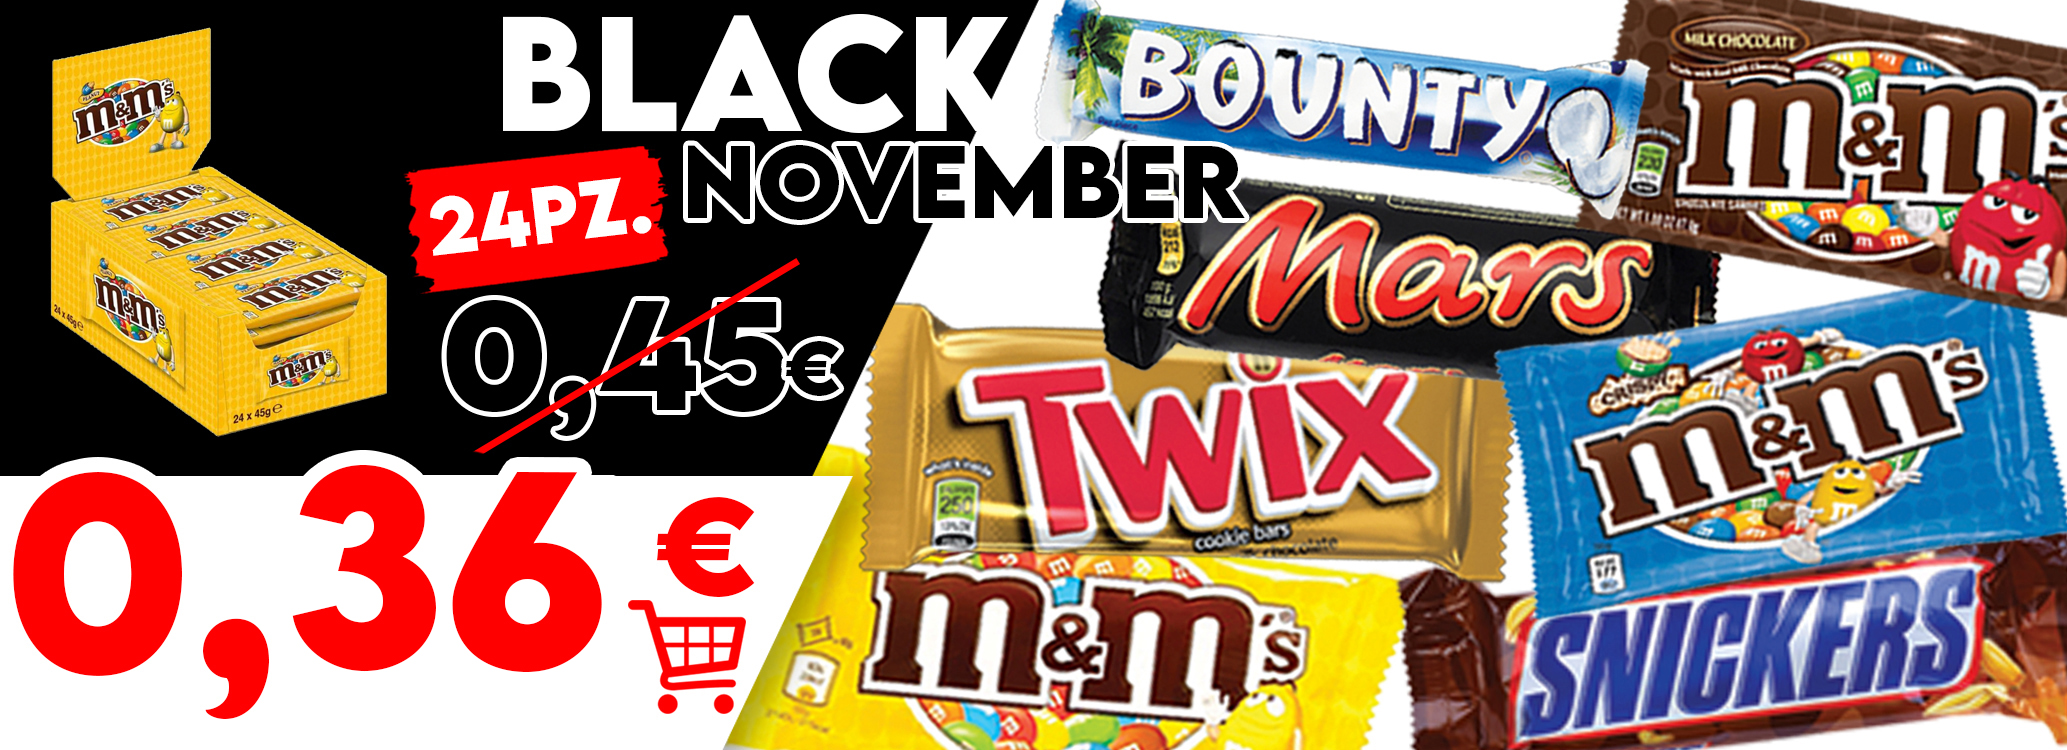 BLACK FRIDAY MARS